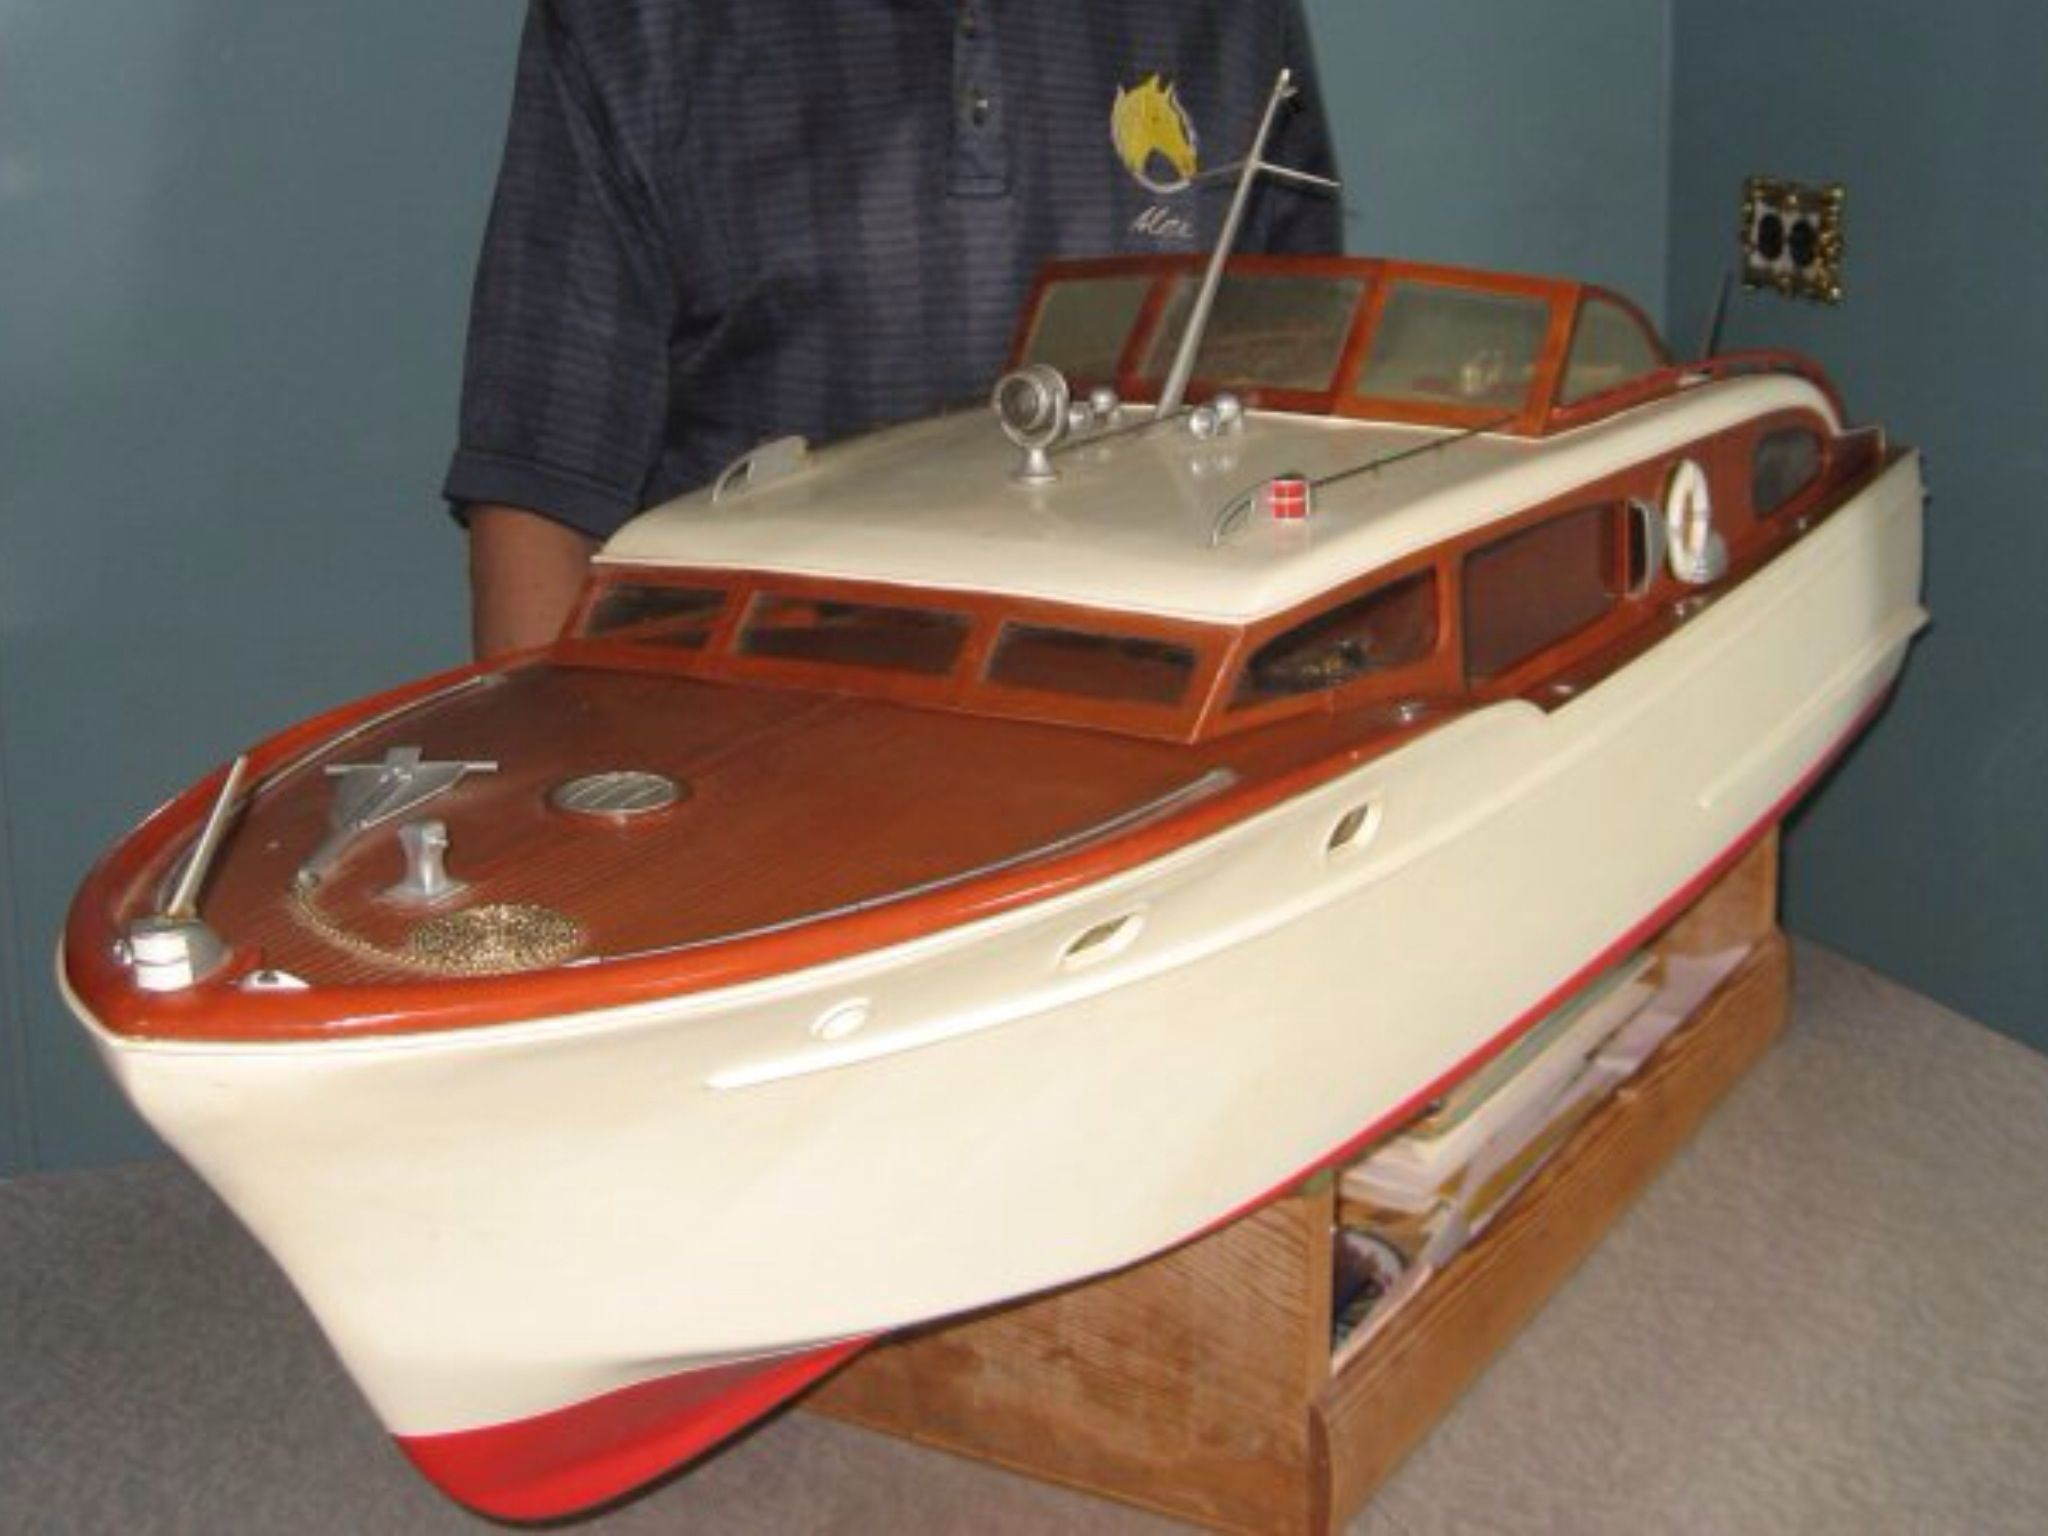 Chris craft model boat plans - Chris Craft Model Boat